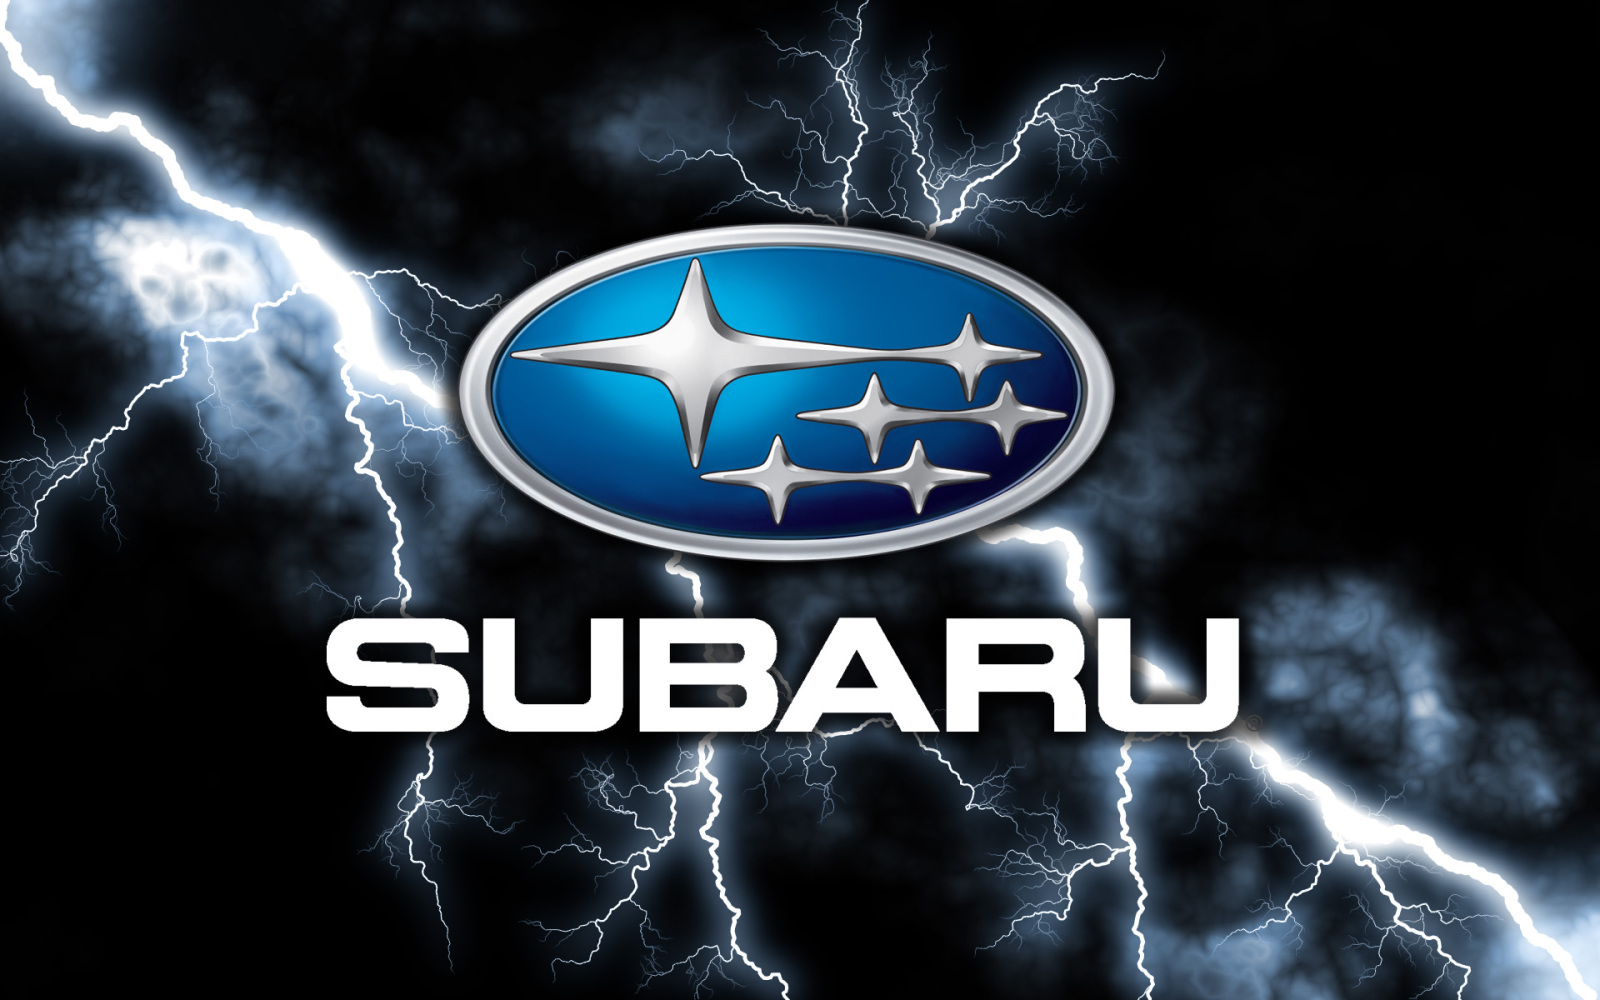 Subaru Factory Computer Diagnostic Equipment has arrived at Glenwood Auto Saskatoon